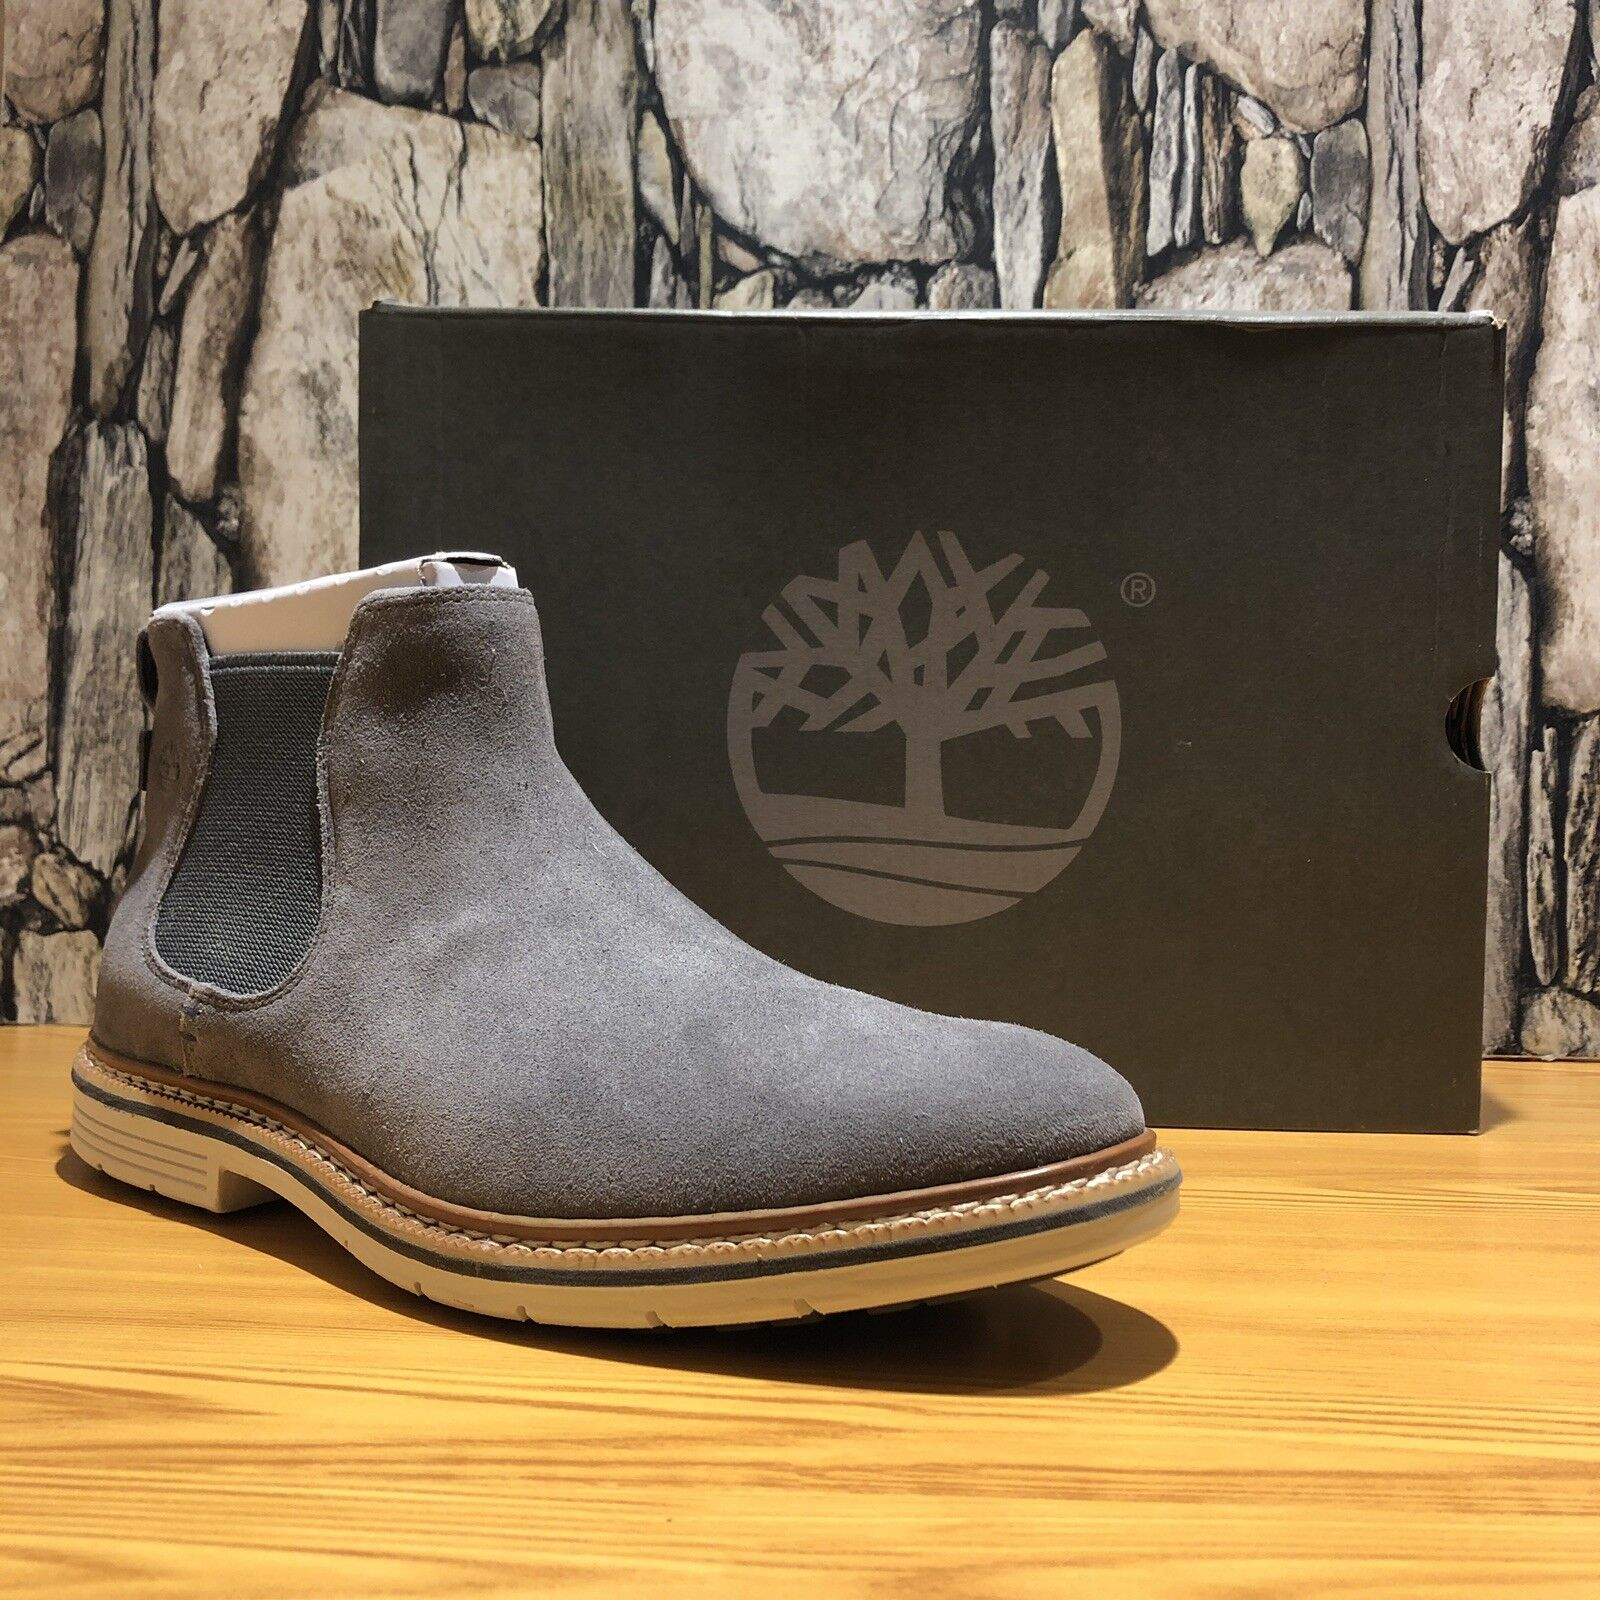 Timberland Men's Naples Trail Chelsea Boot Grey Graphite TB0A1PD6 Size 13